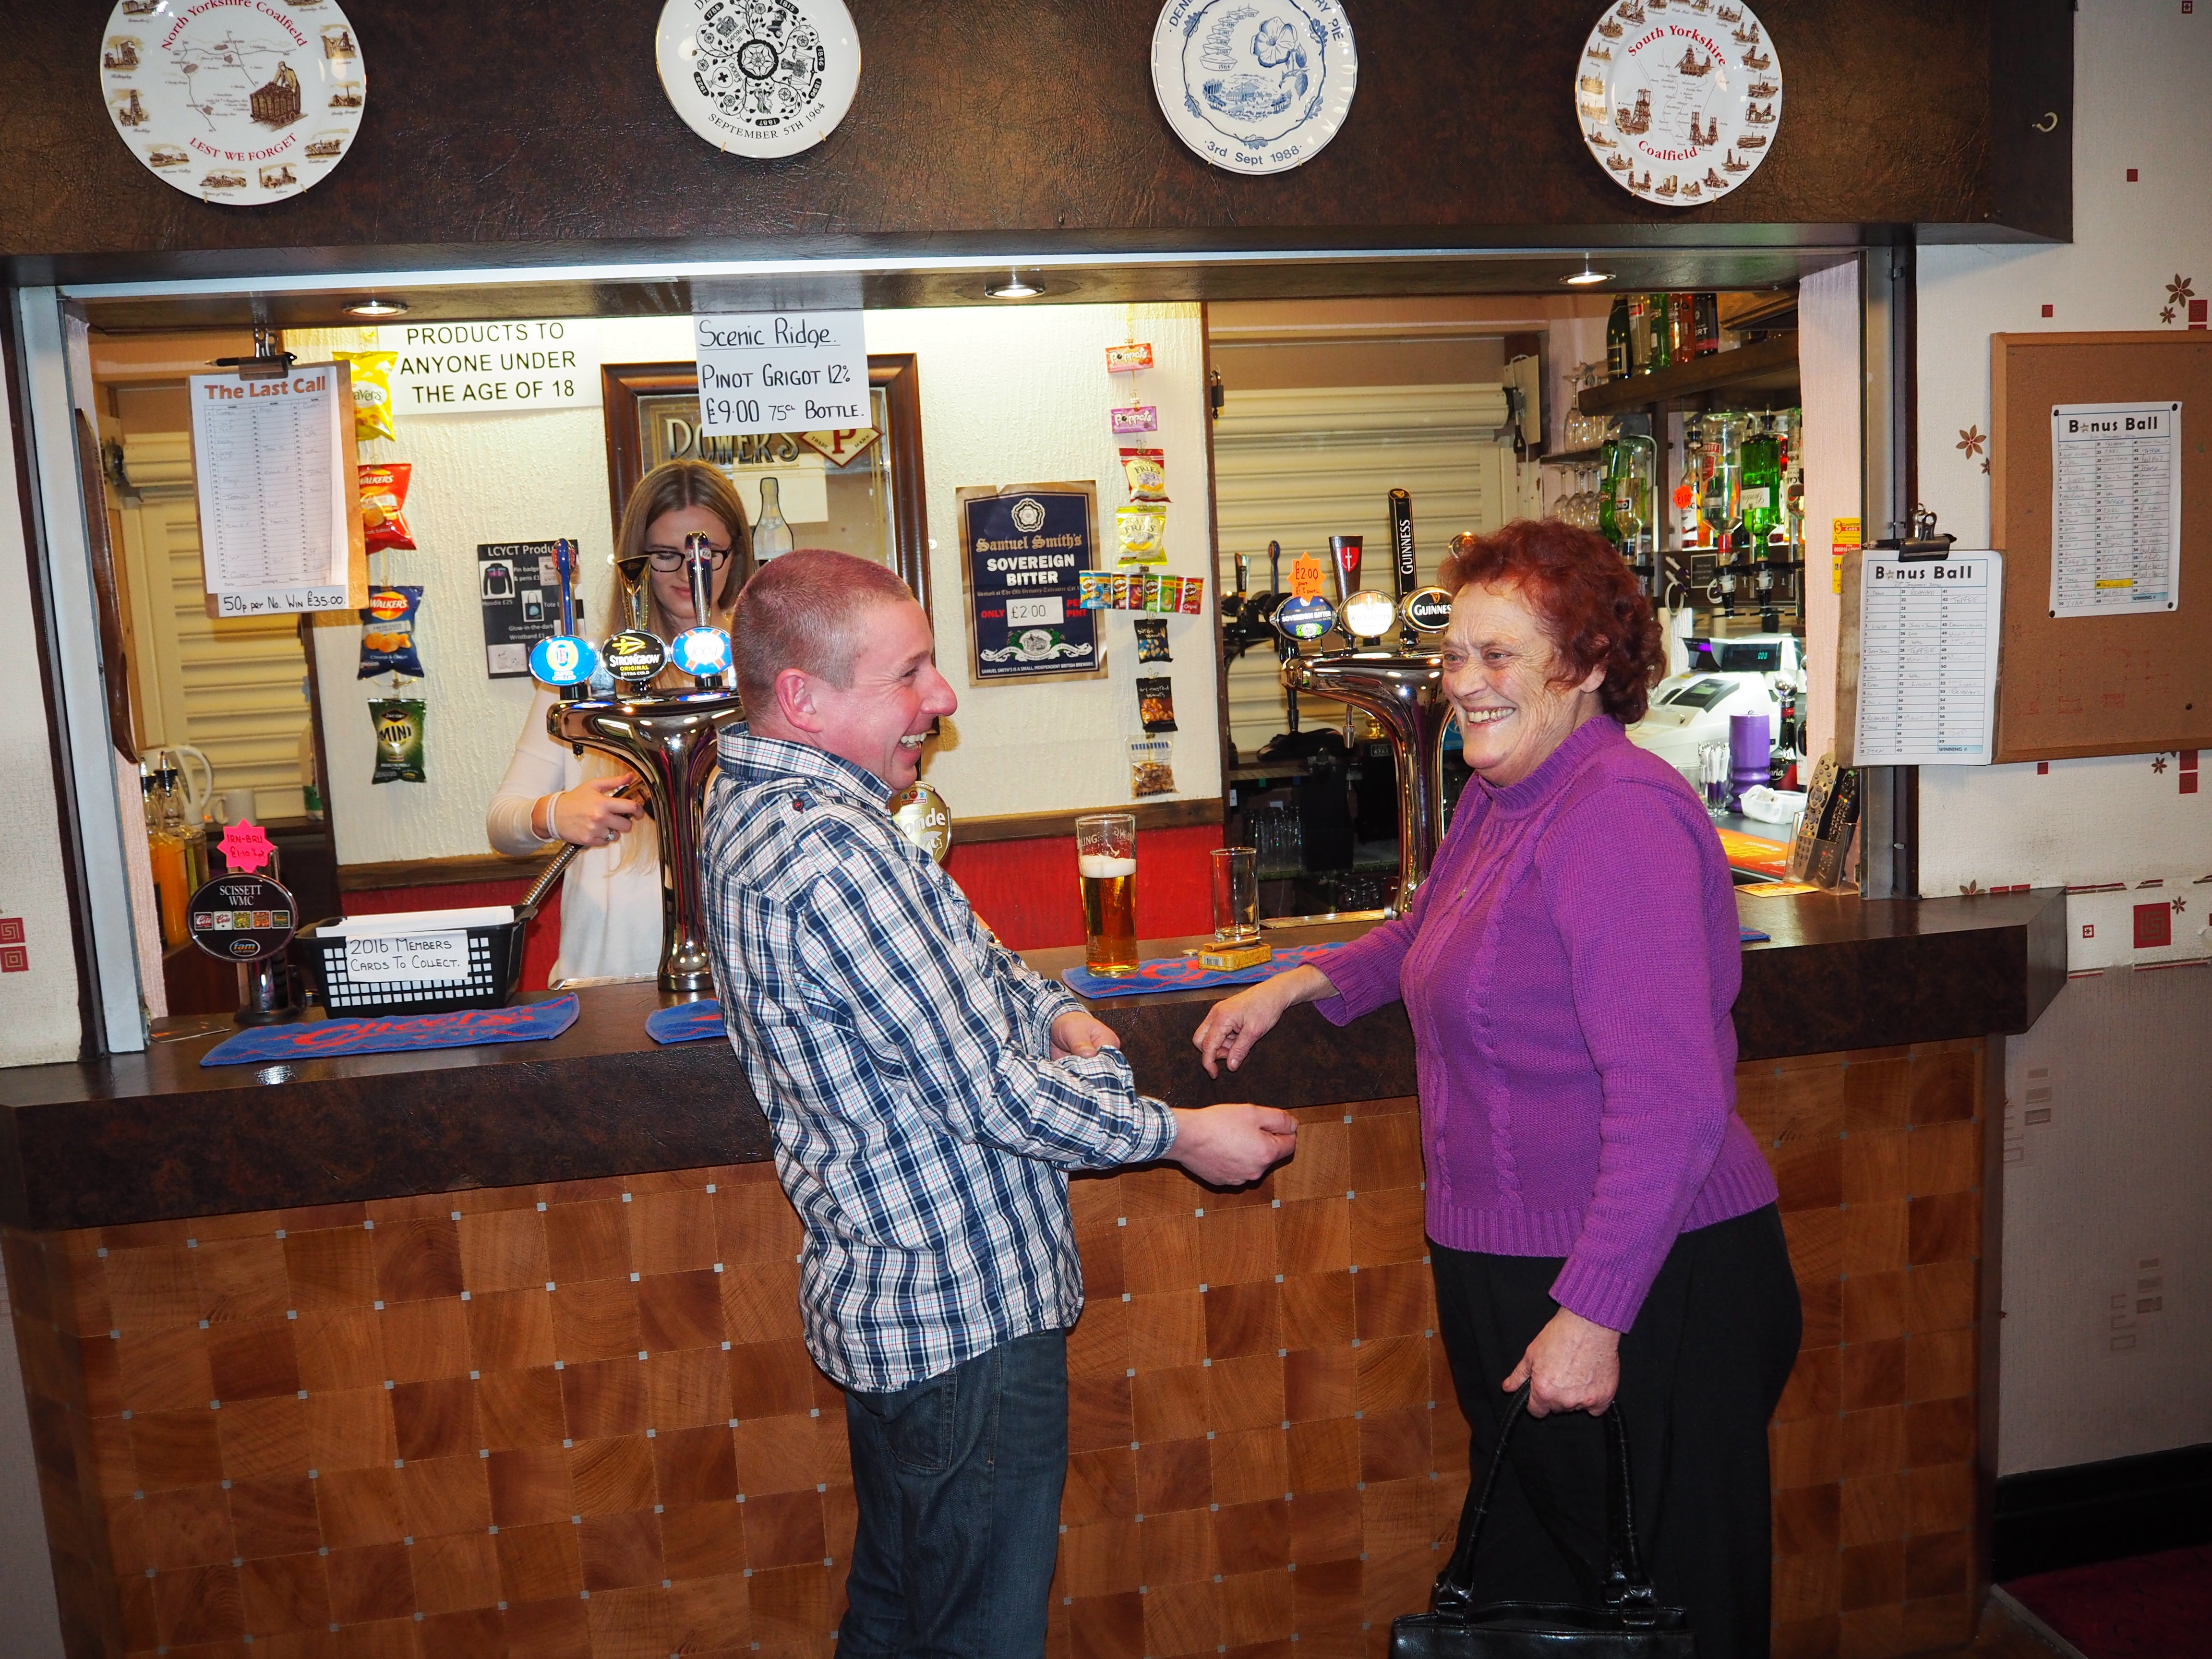 Andy-and-Mollie-at-the-bar